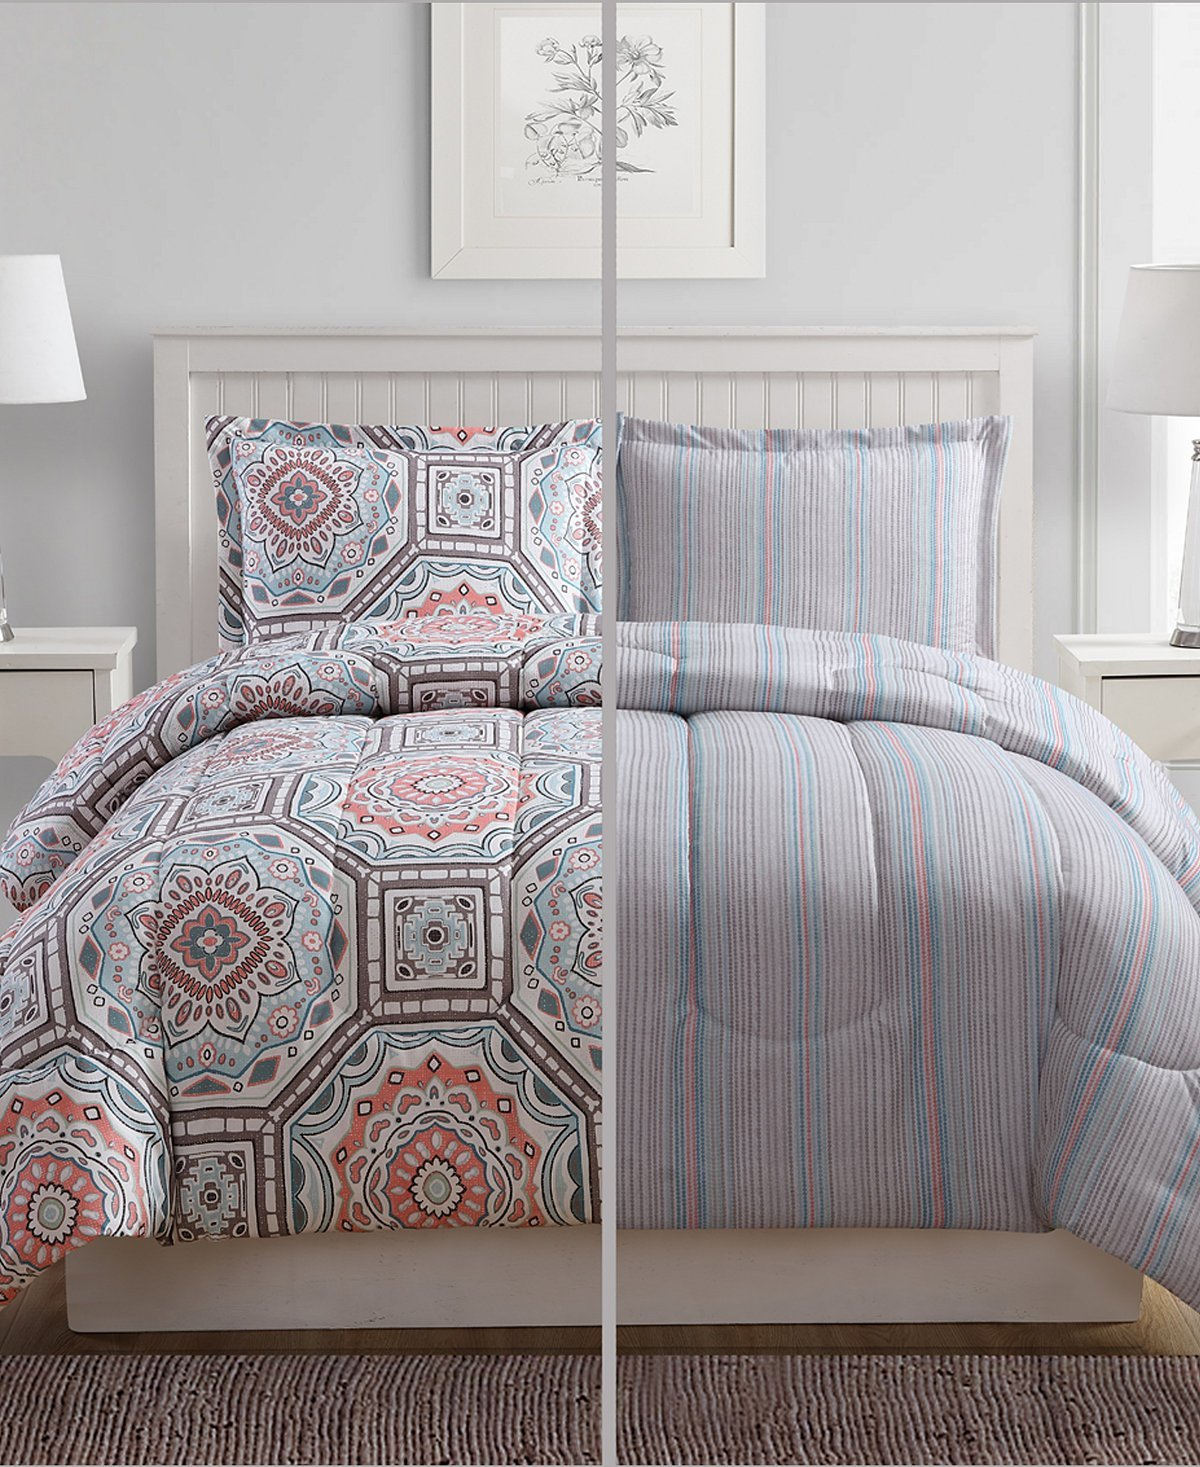 Best 3 Piece Bed Sets Are Just 20 At Macy S Dwym With Pictures